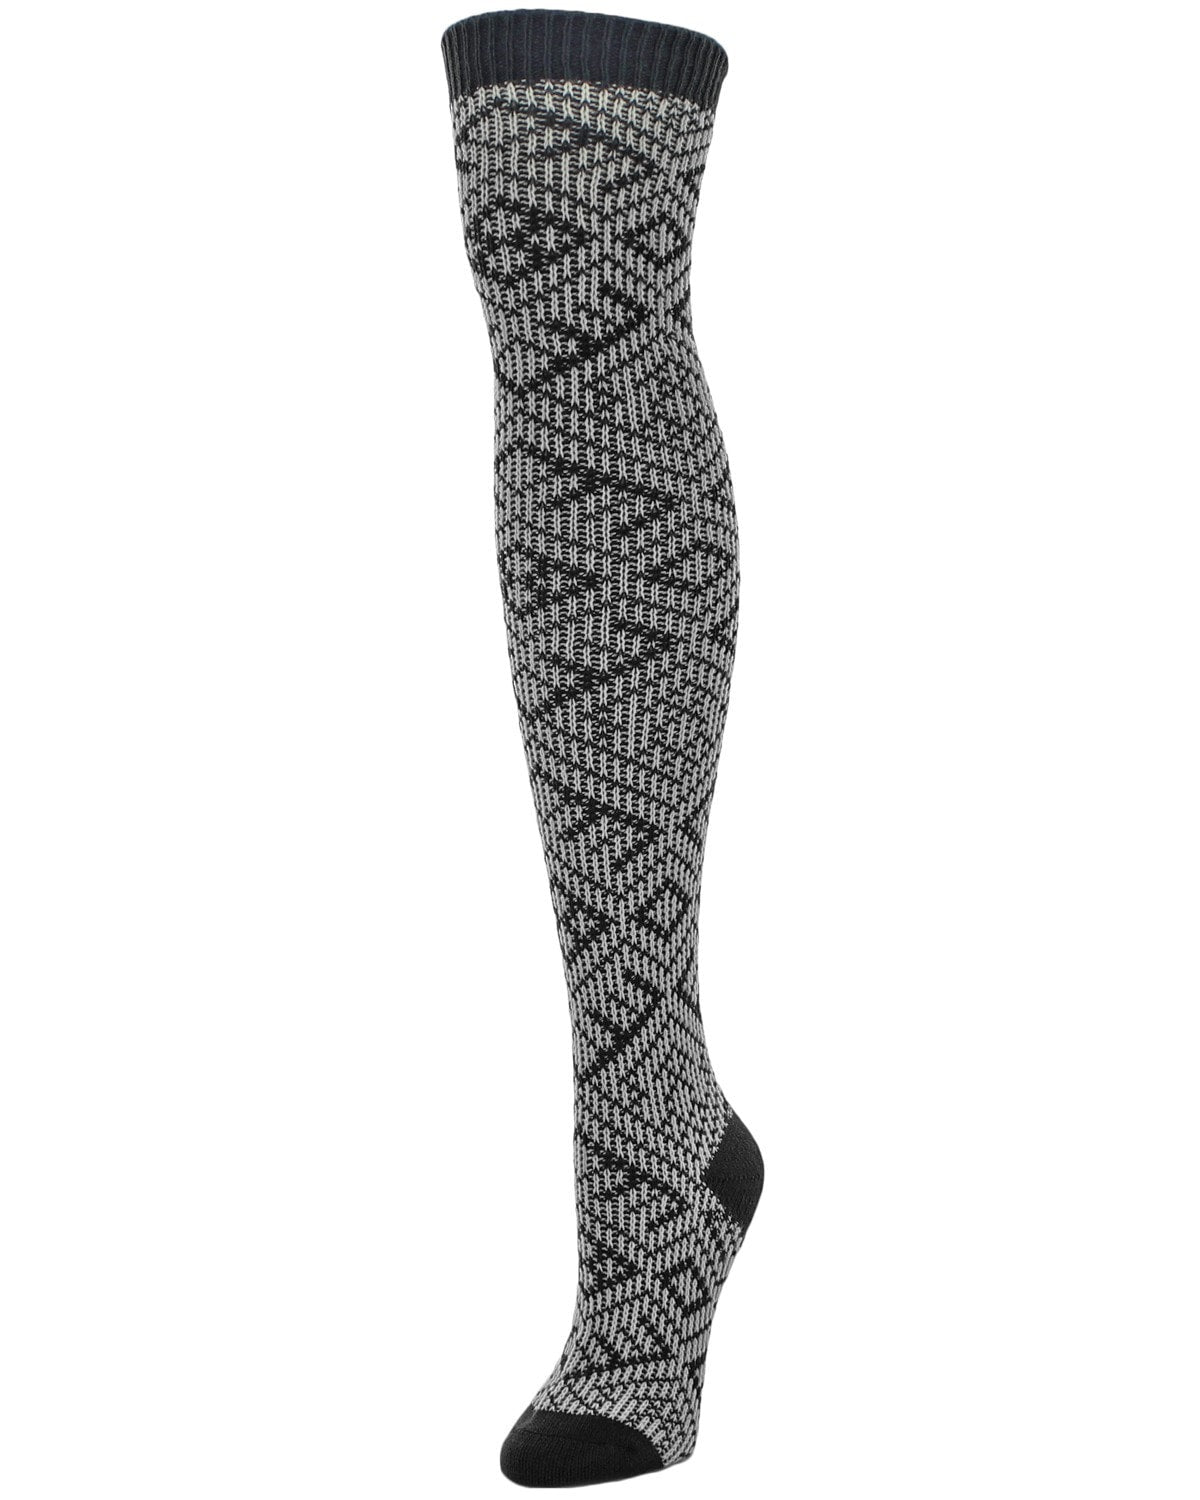 Checkers & Weaves Over The Knee Women Socks - MeMoi - 3